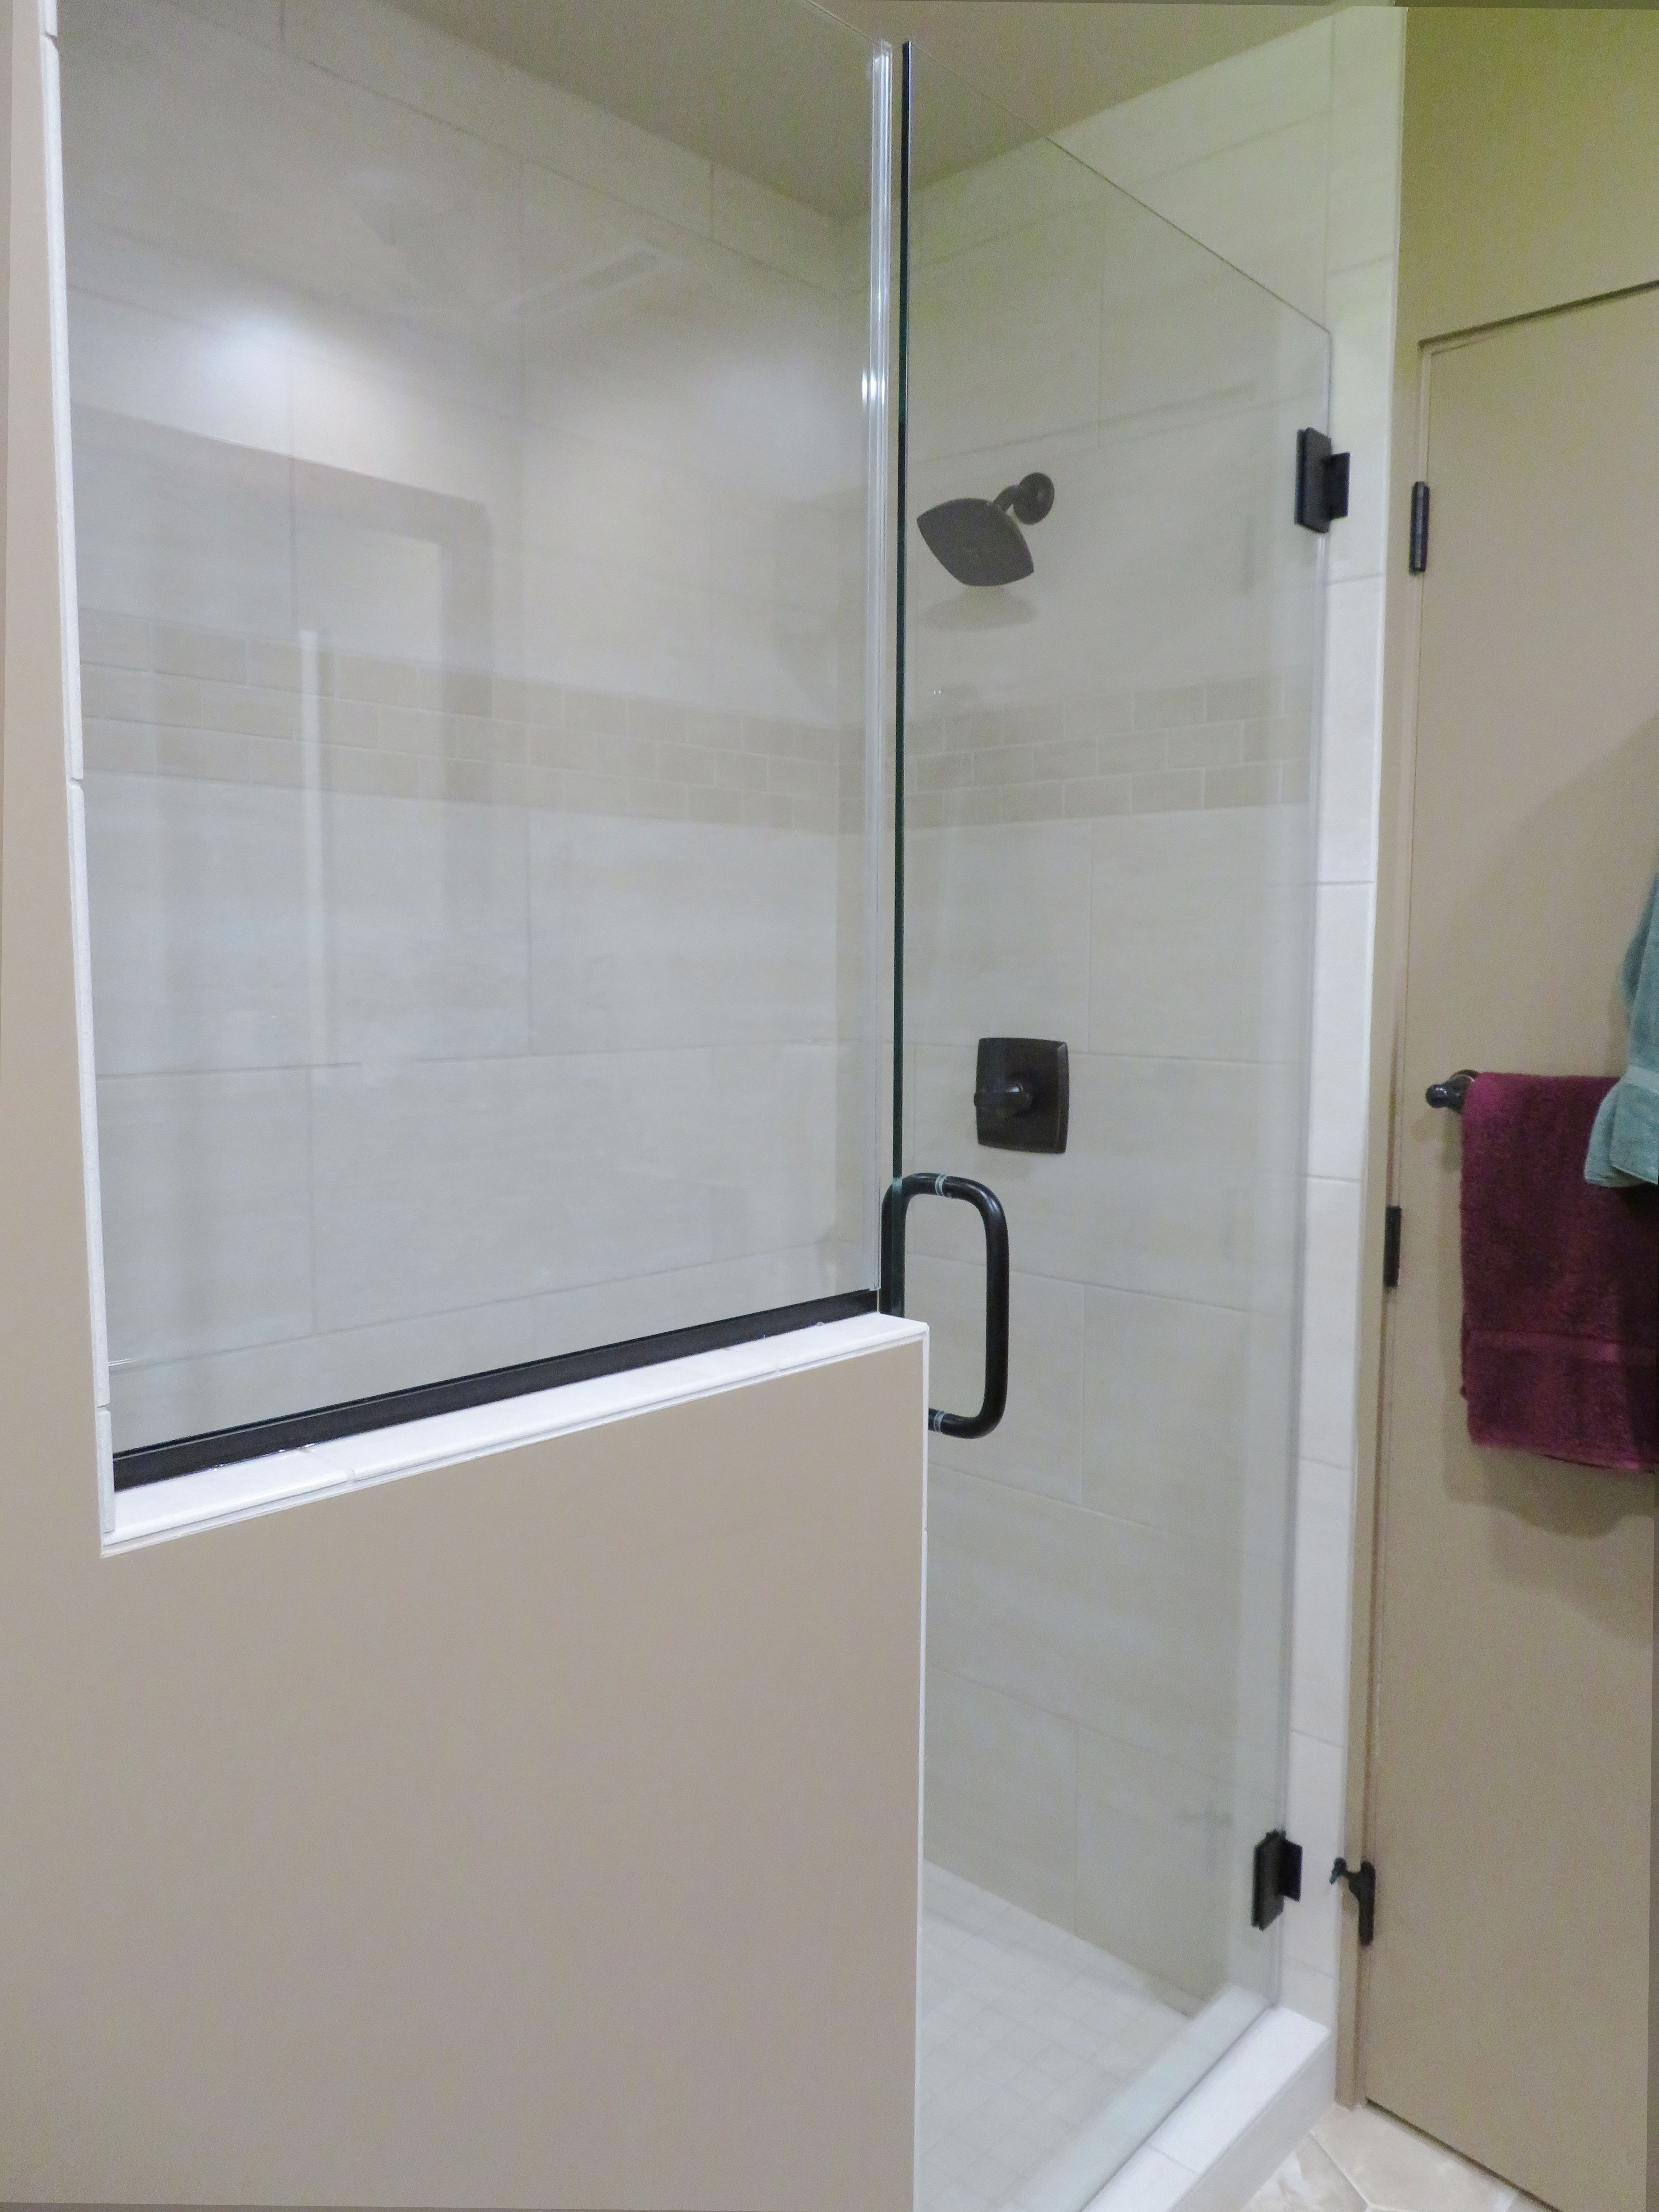 Tile Shower With Gl Doors Niche Behind The Half Wall To Keep Clutter Of Shampoo Tucked Away And Out Sight